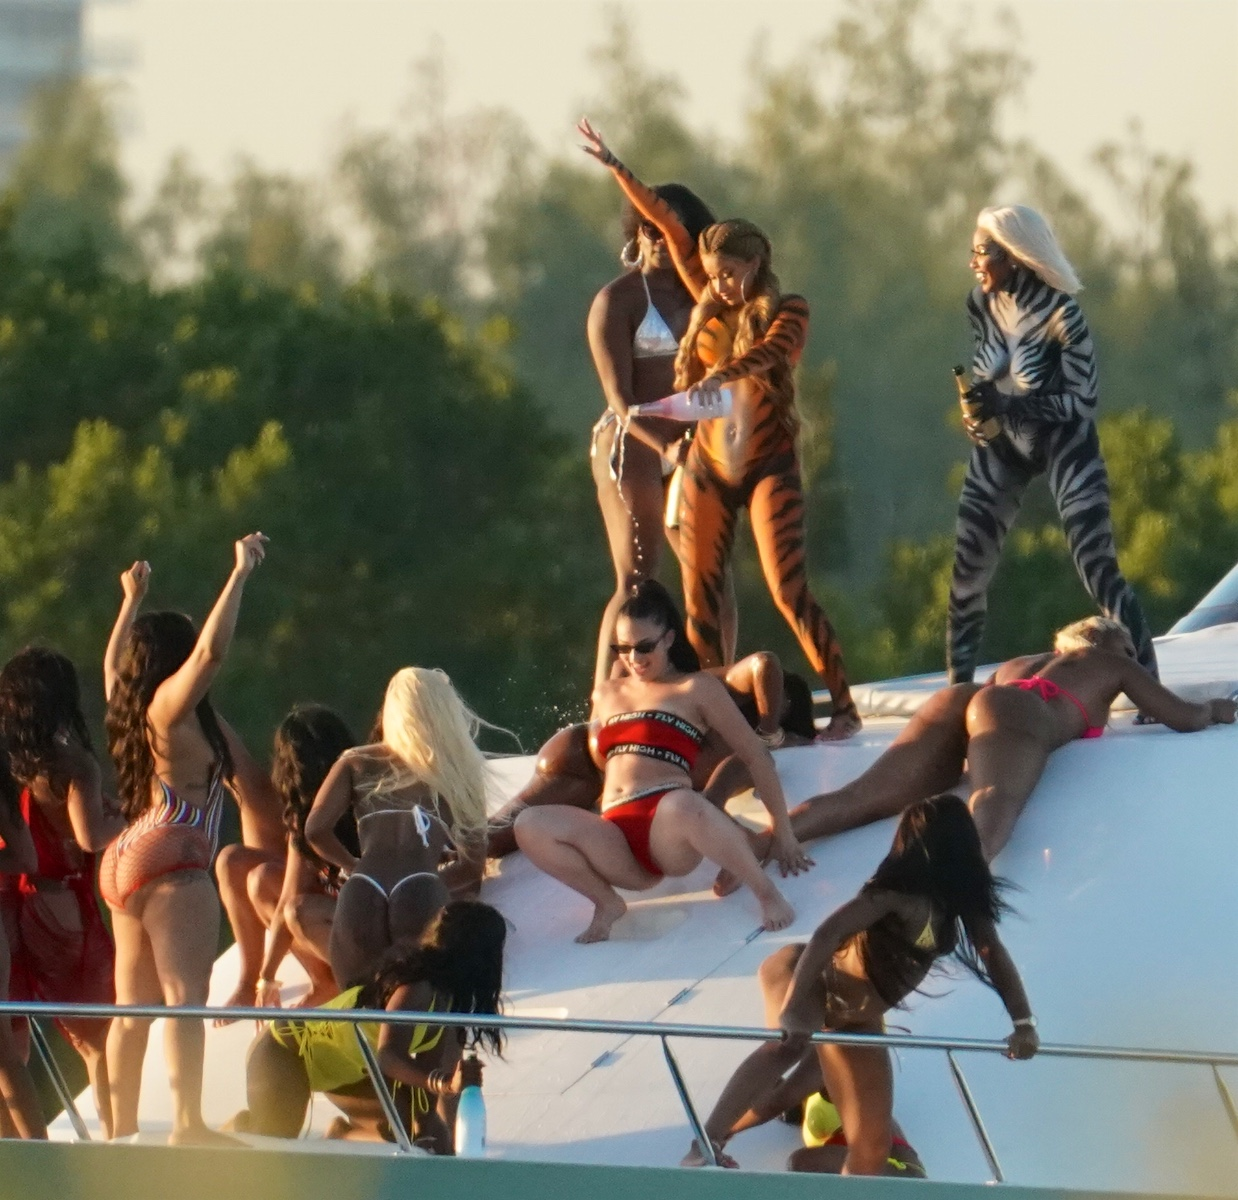 Body-painted Cardi B goes wild on yacht as she films video while splashing champagne